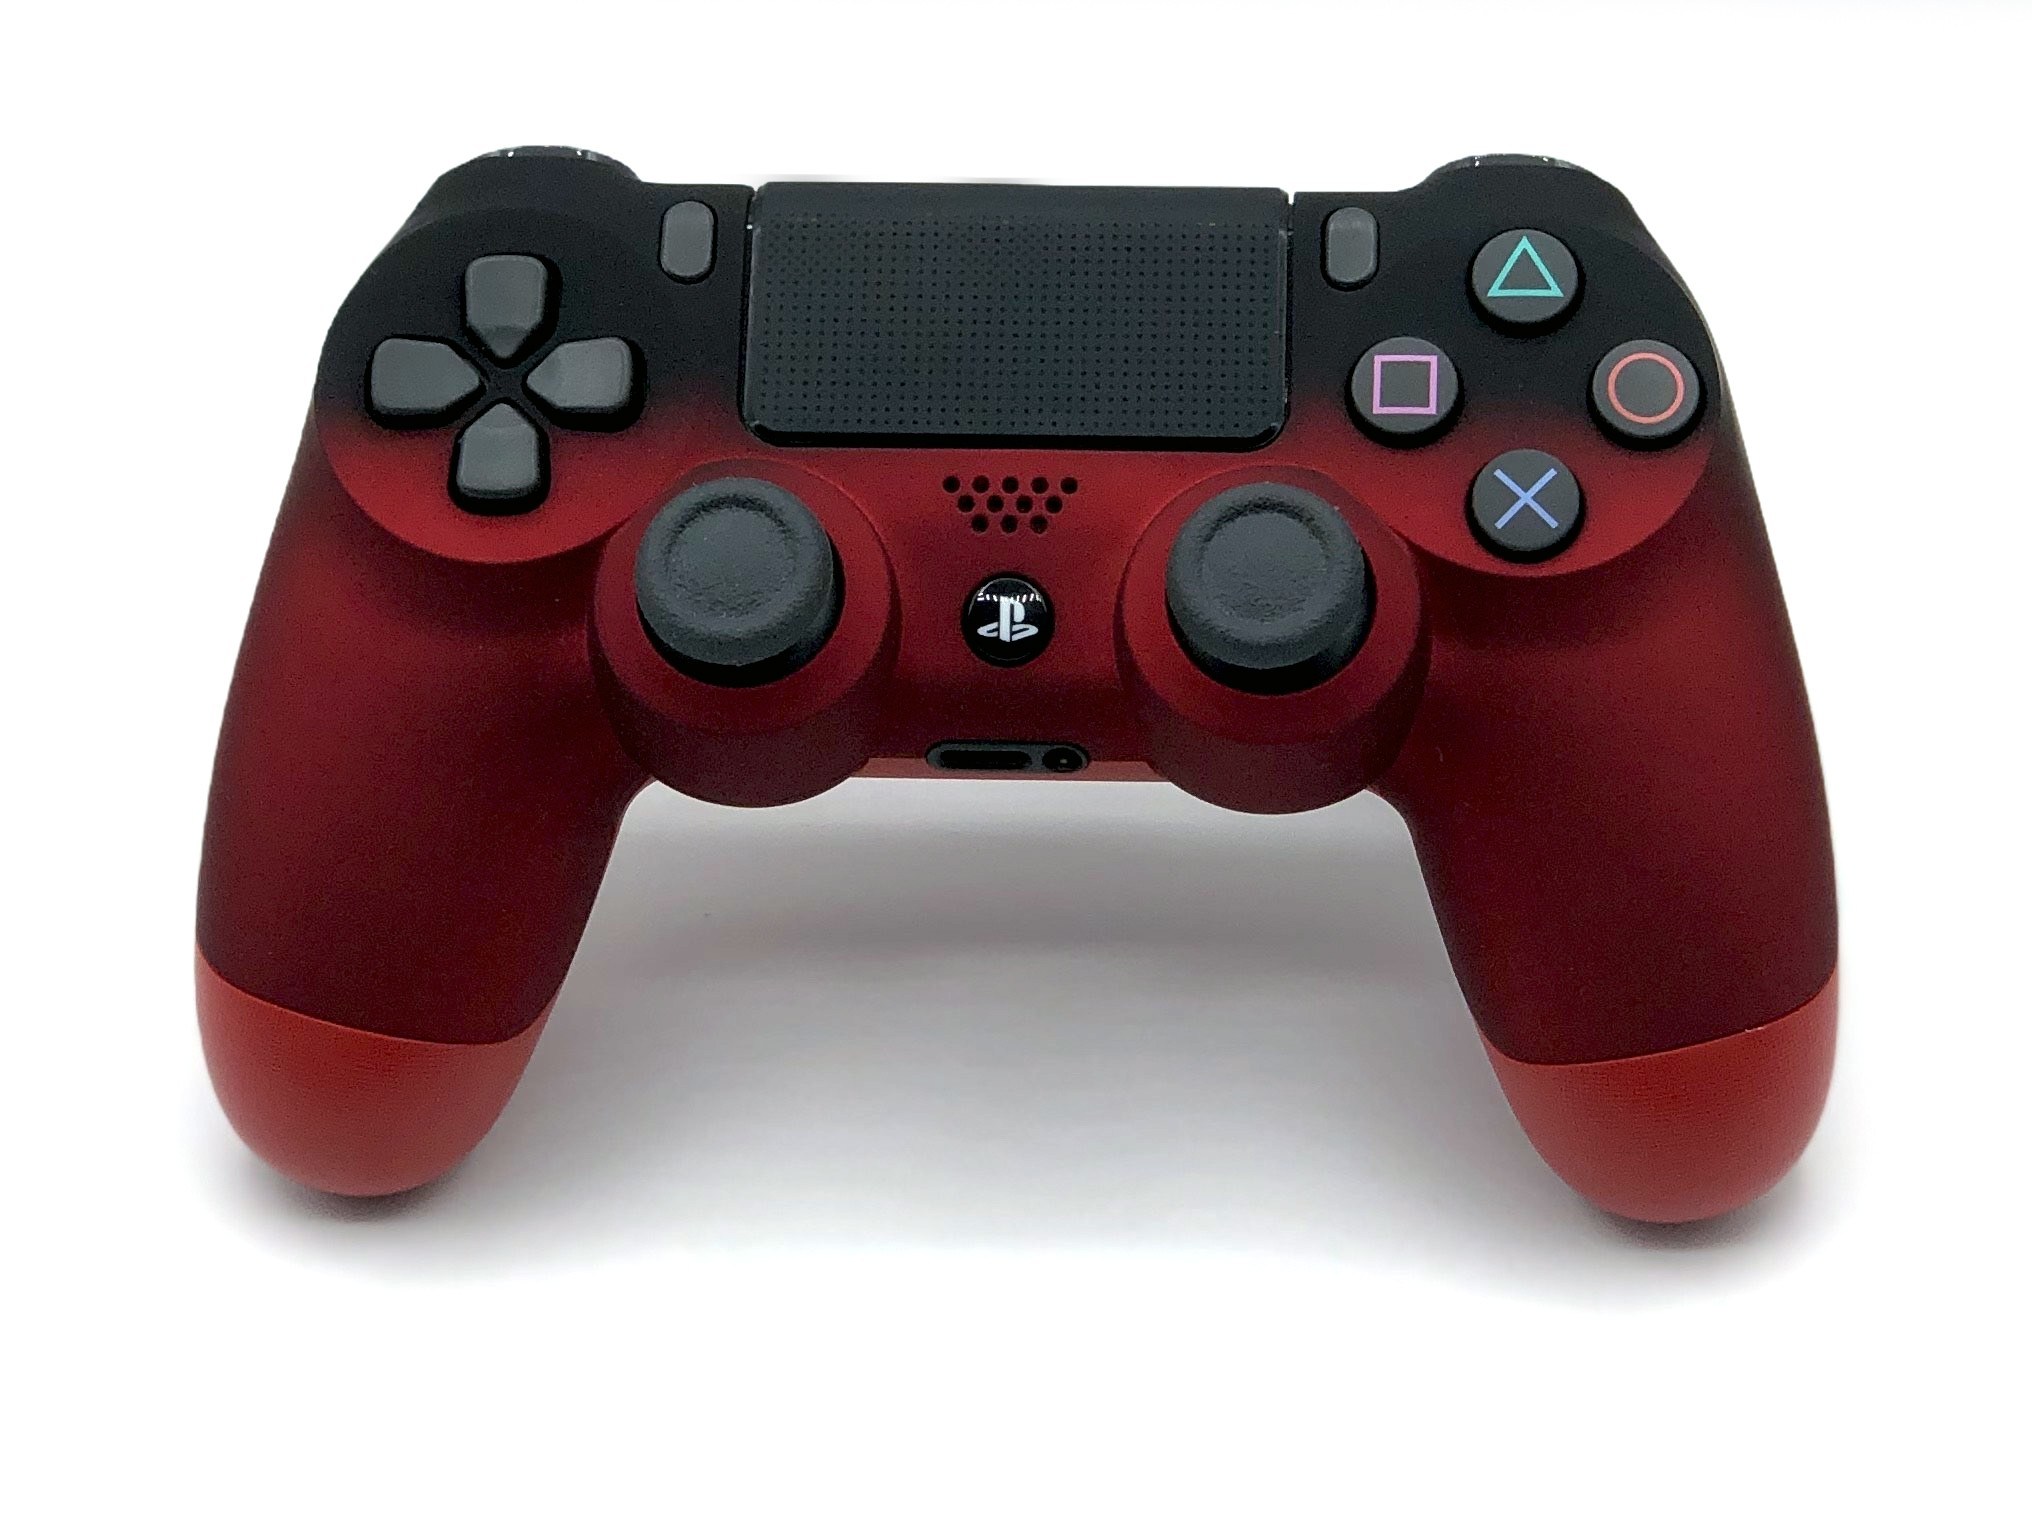 PS4 PRO Esports Controller with Additional Buttons X+O